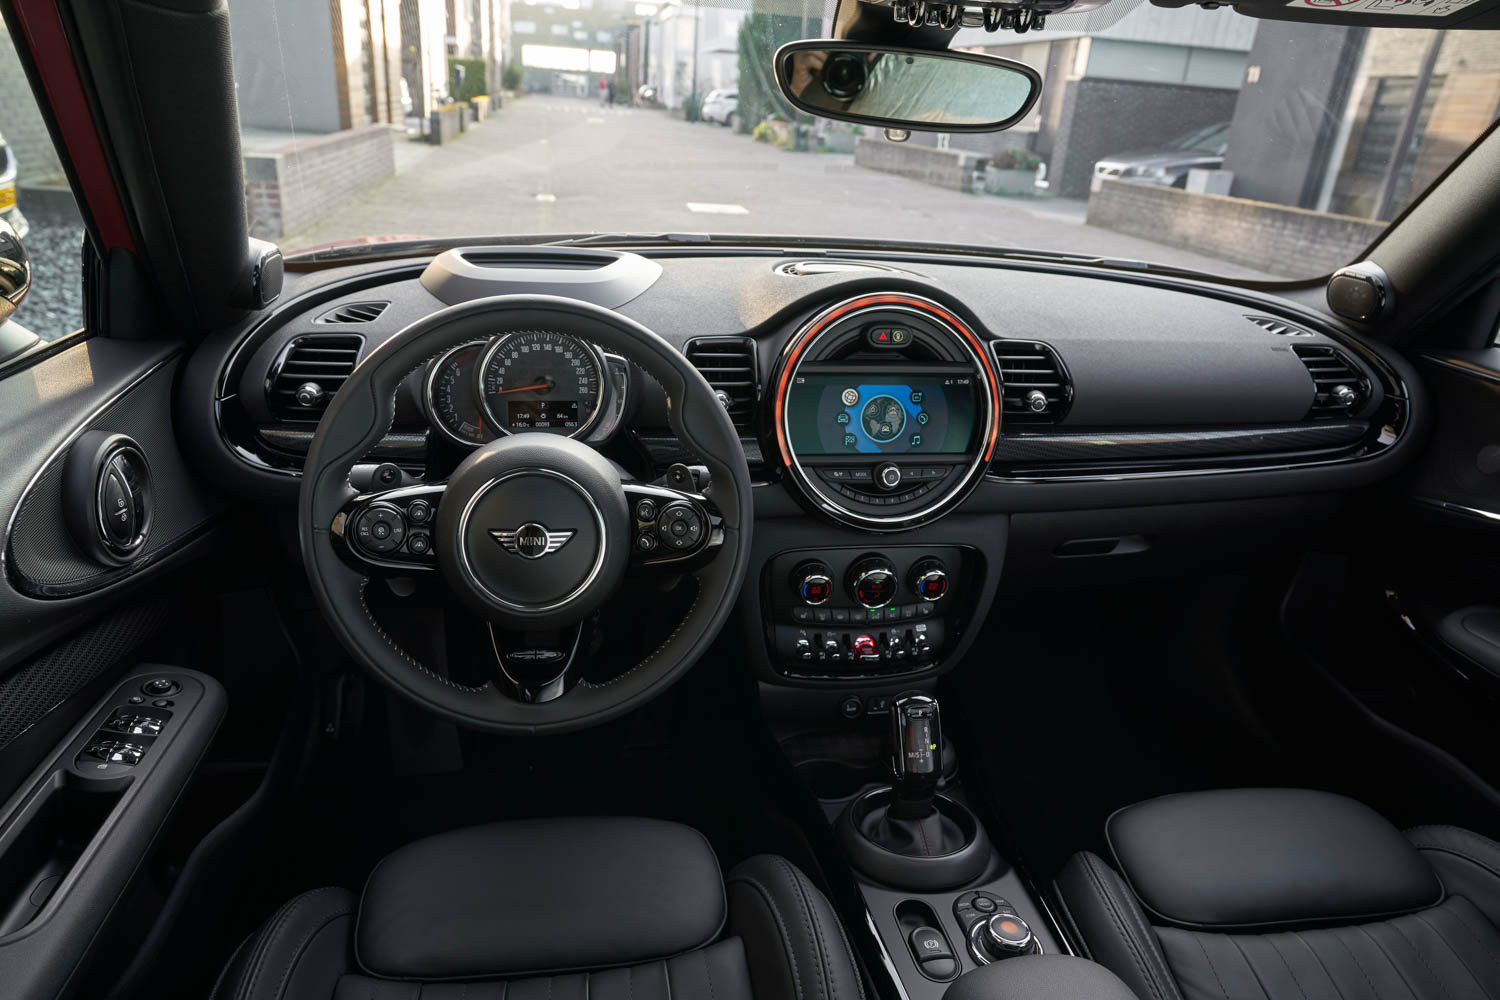 2019 MINI Clubman interior